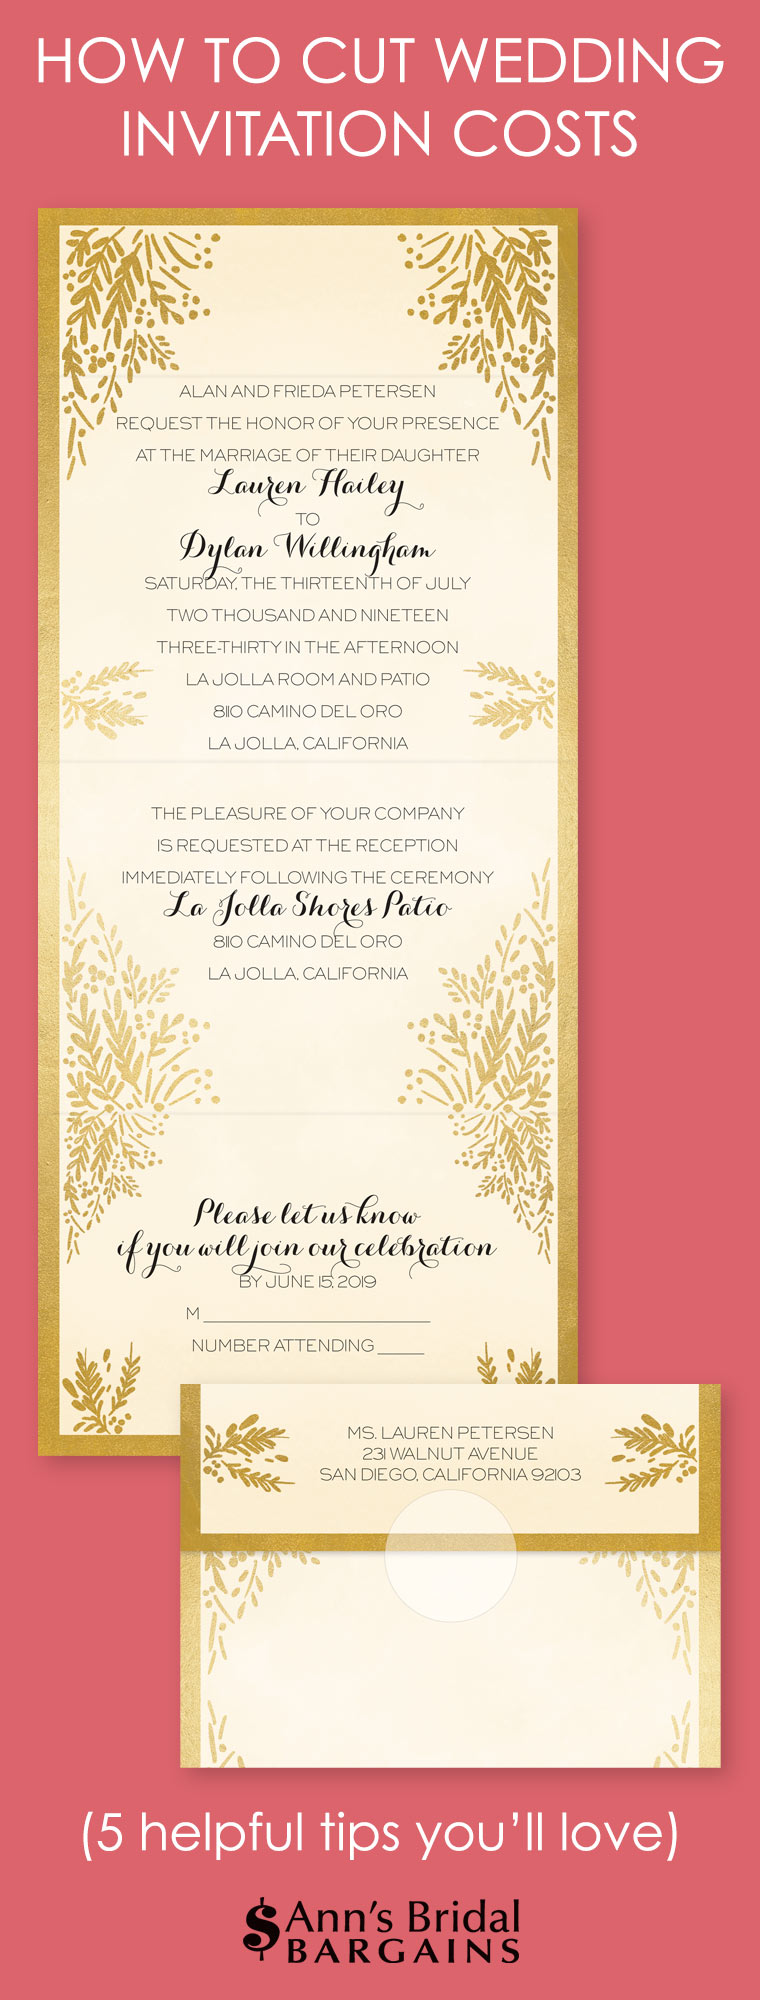 How to cut wedding invitation costs ann 39 s bridal bargains Wedding invitation cost